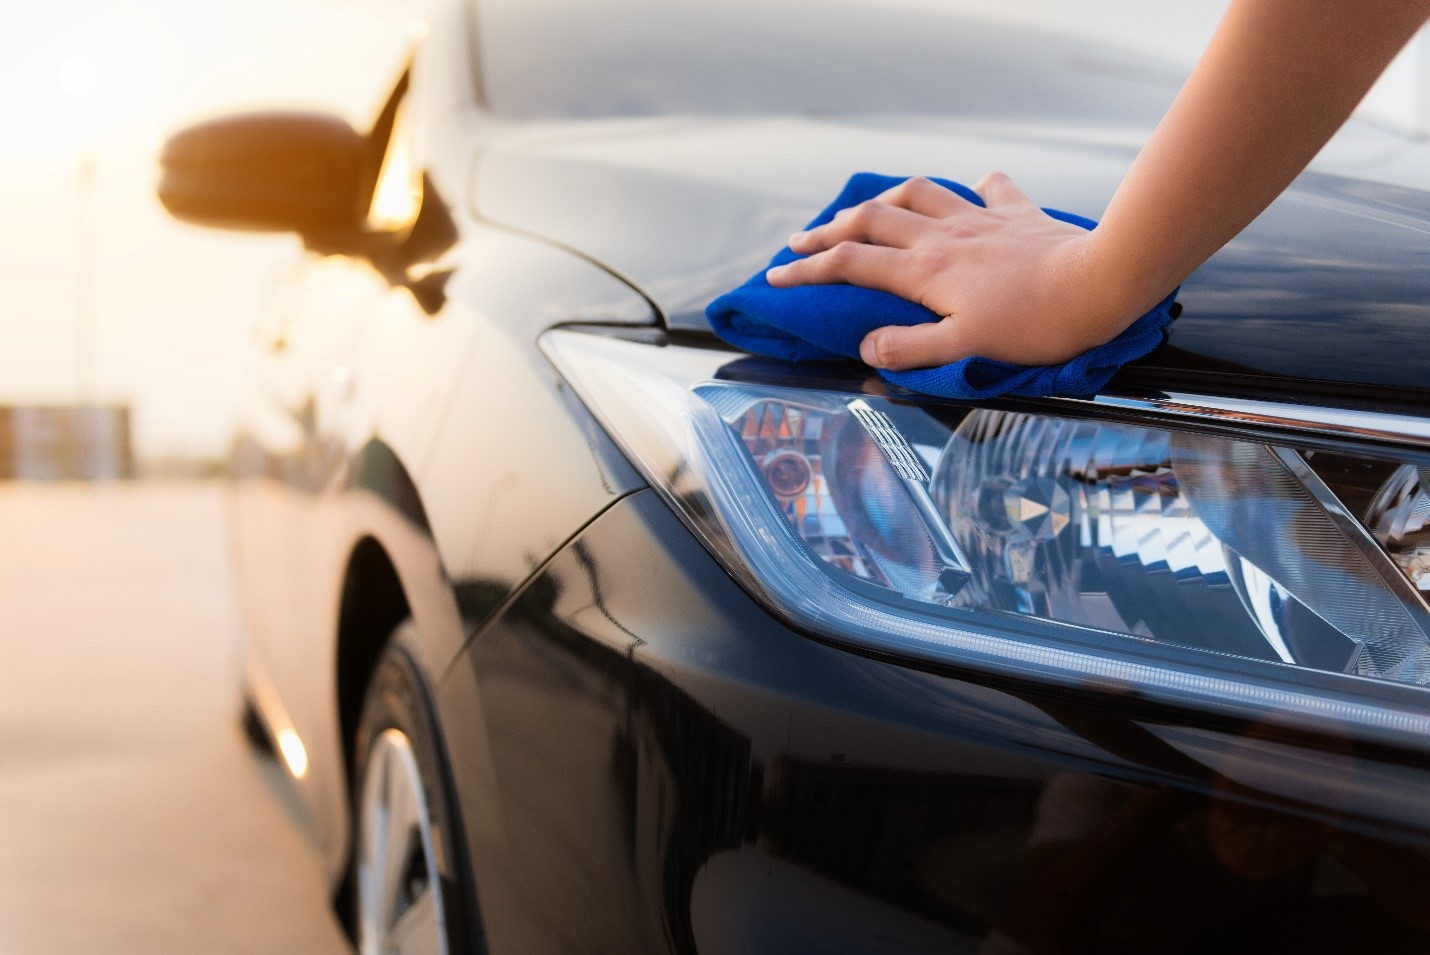 5 Reasons Why Microfiber Is the Best Car Drying Cloth